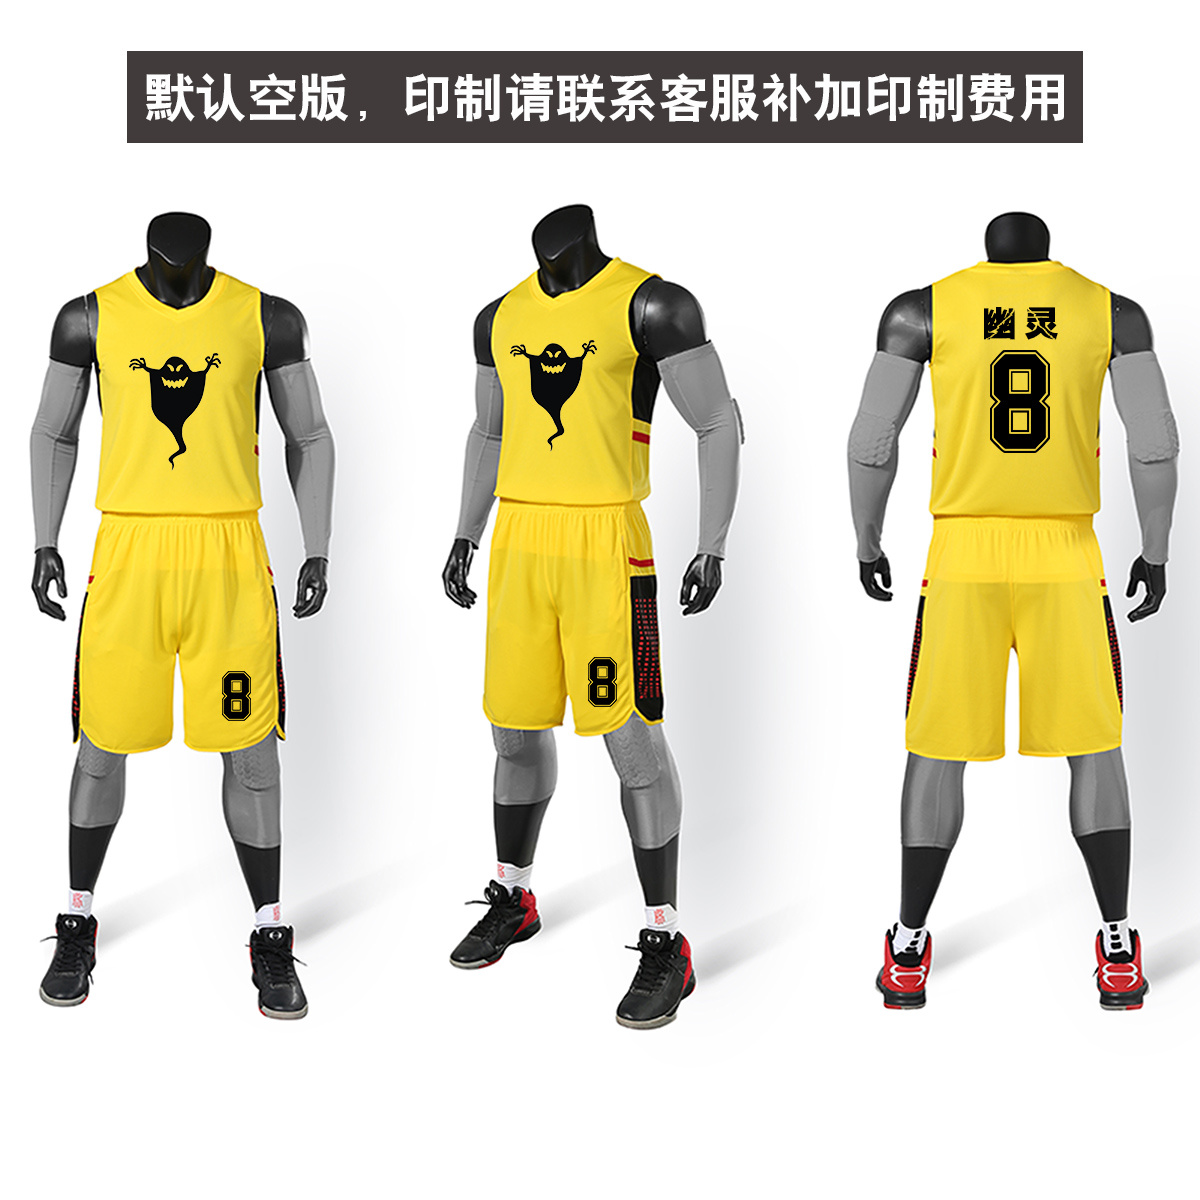 Personalized basketball suit custom suit mens and womens College Students basketball match uniform mens Vest printed basketball shirt team uniform